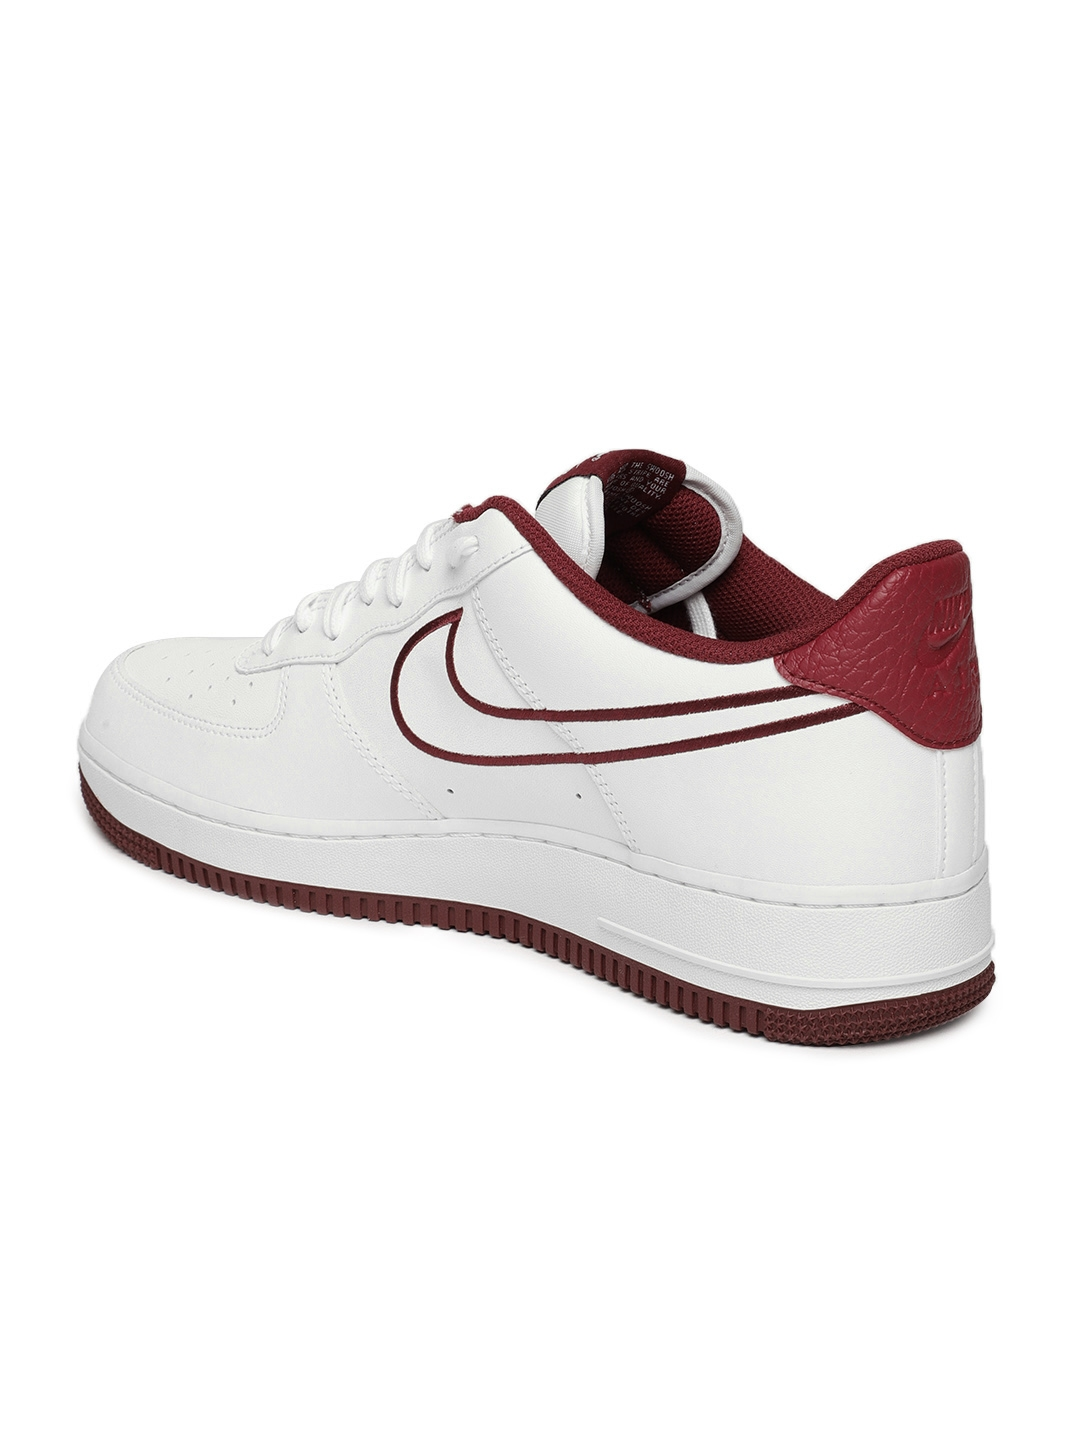 new product 5ebe2 ea52e Nike Men White Air Force 1 07 Leather Casual Shoes